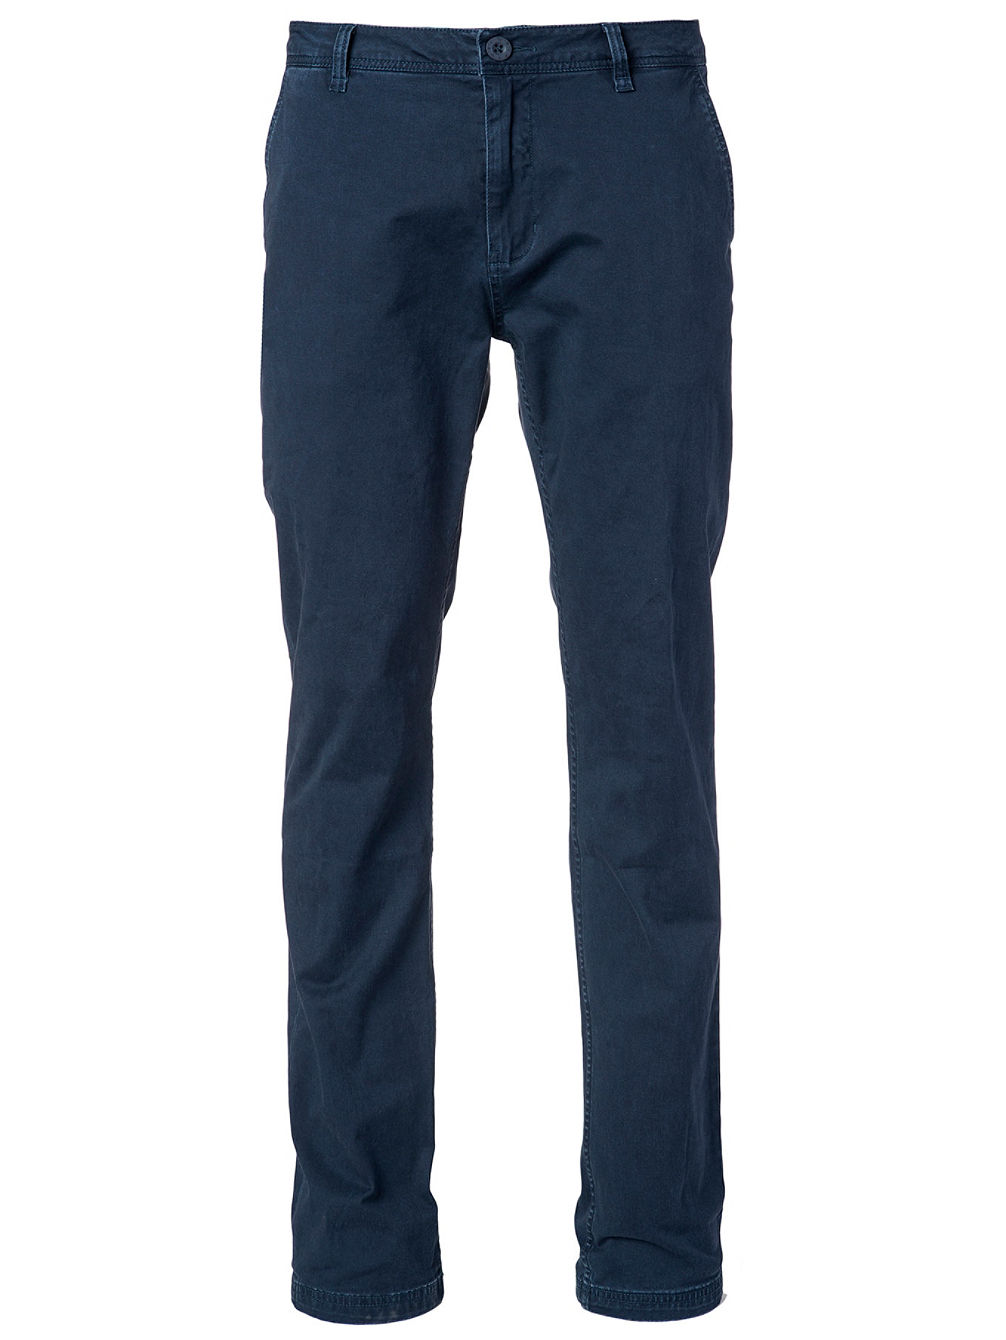 Travellers Straight Chino Pants